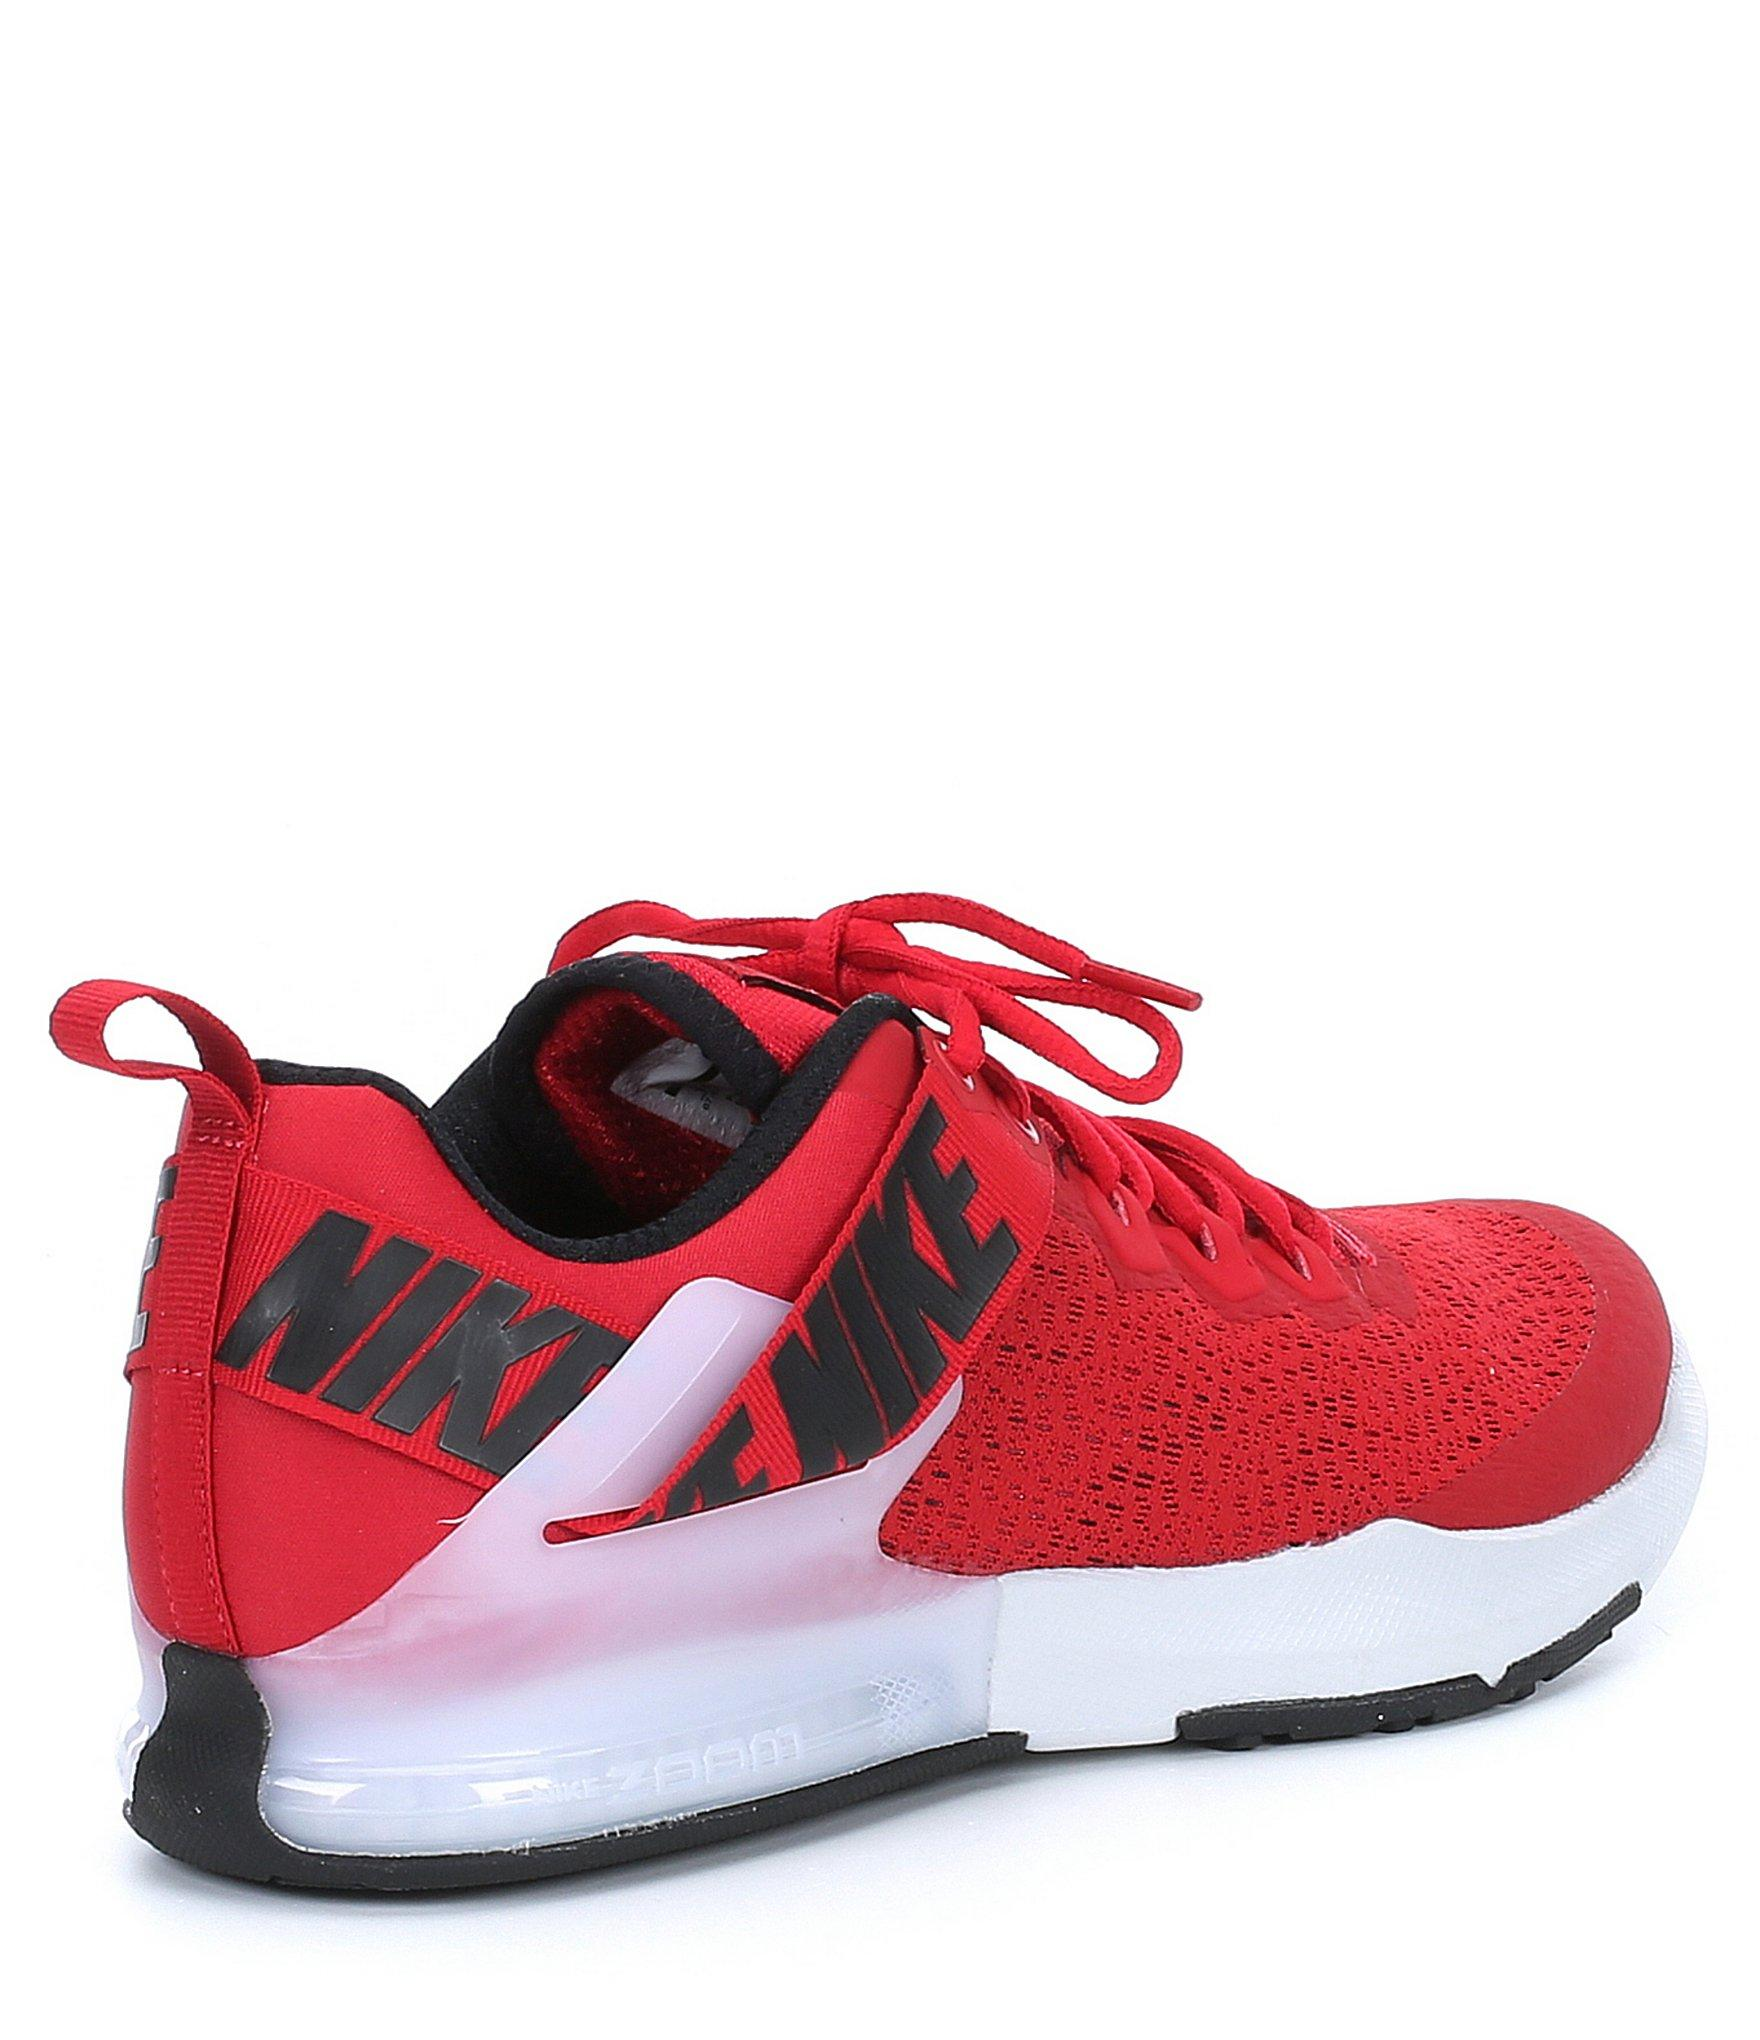 d824d2195ba6c Lyst - Nike Men s Zoom Domination Tr 2 Training Shoe in Red for Men